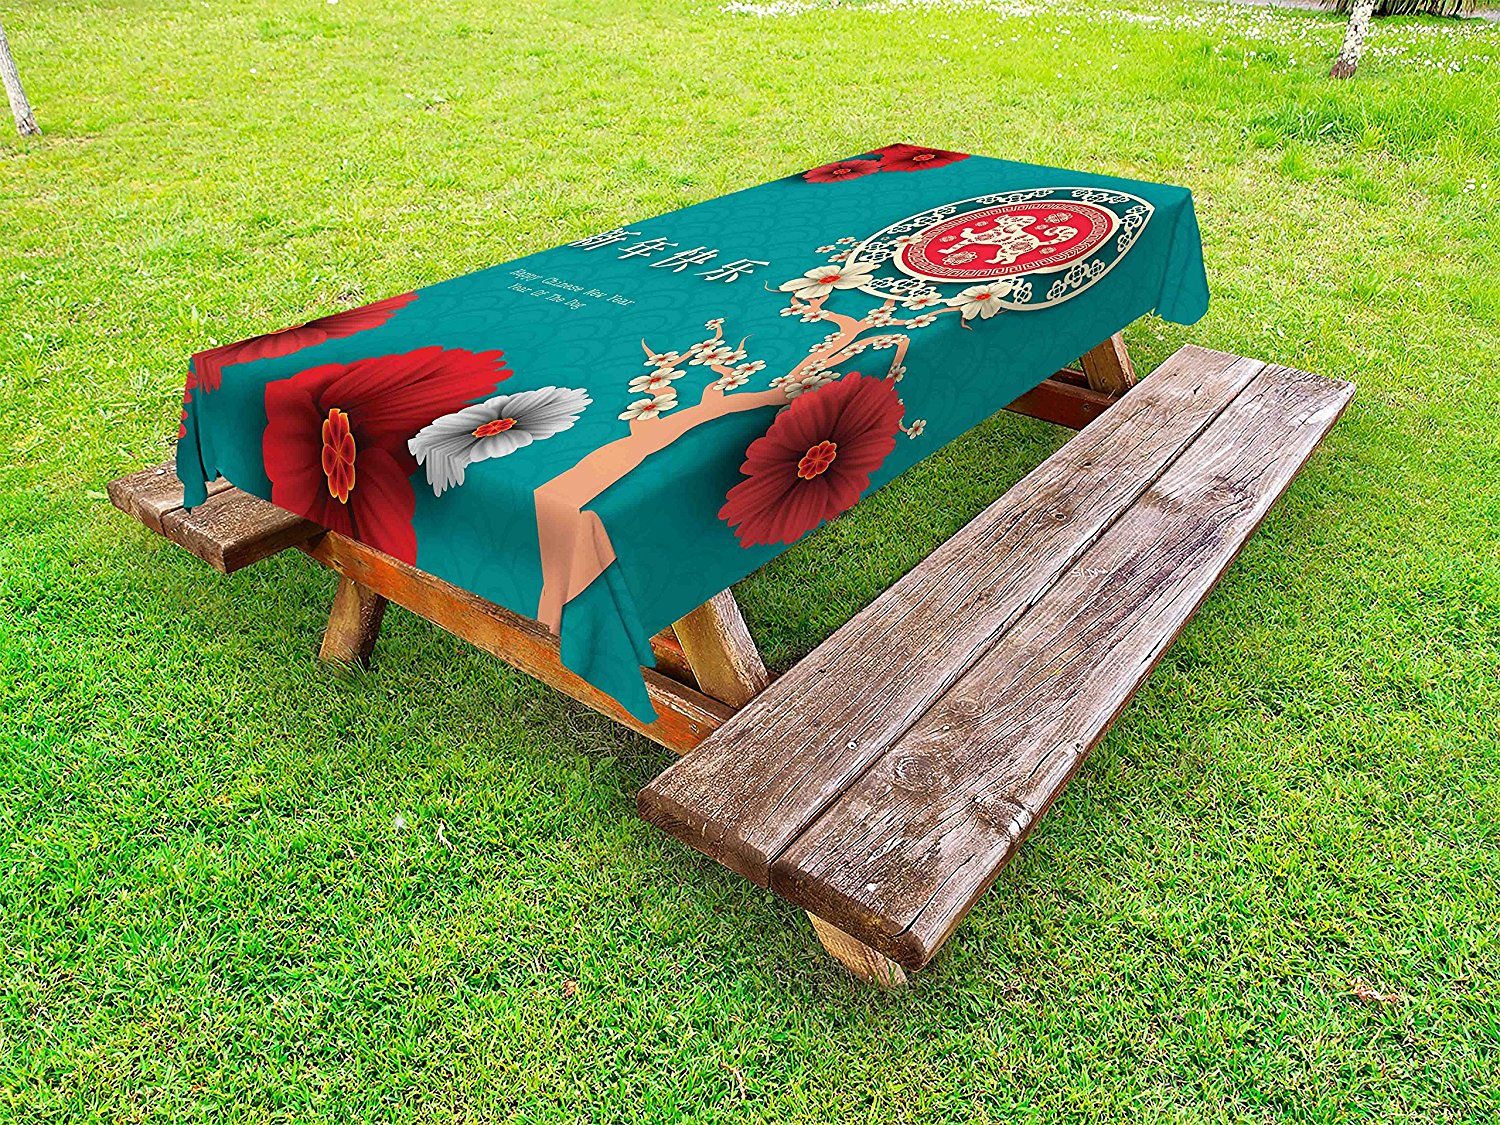 Ambesonne Year of the Dog Outdoor Tablecloth, Ornate Oriental Motifs with Flowers and Flourishing Tree Lunar Festival, Decorative Washable Picnic Table Cloth, 58 X 84 Inches, Multicolor